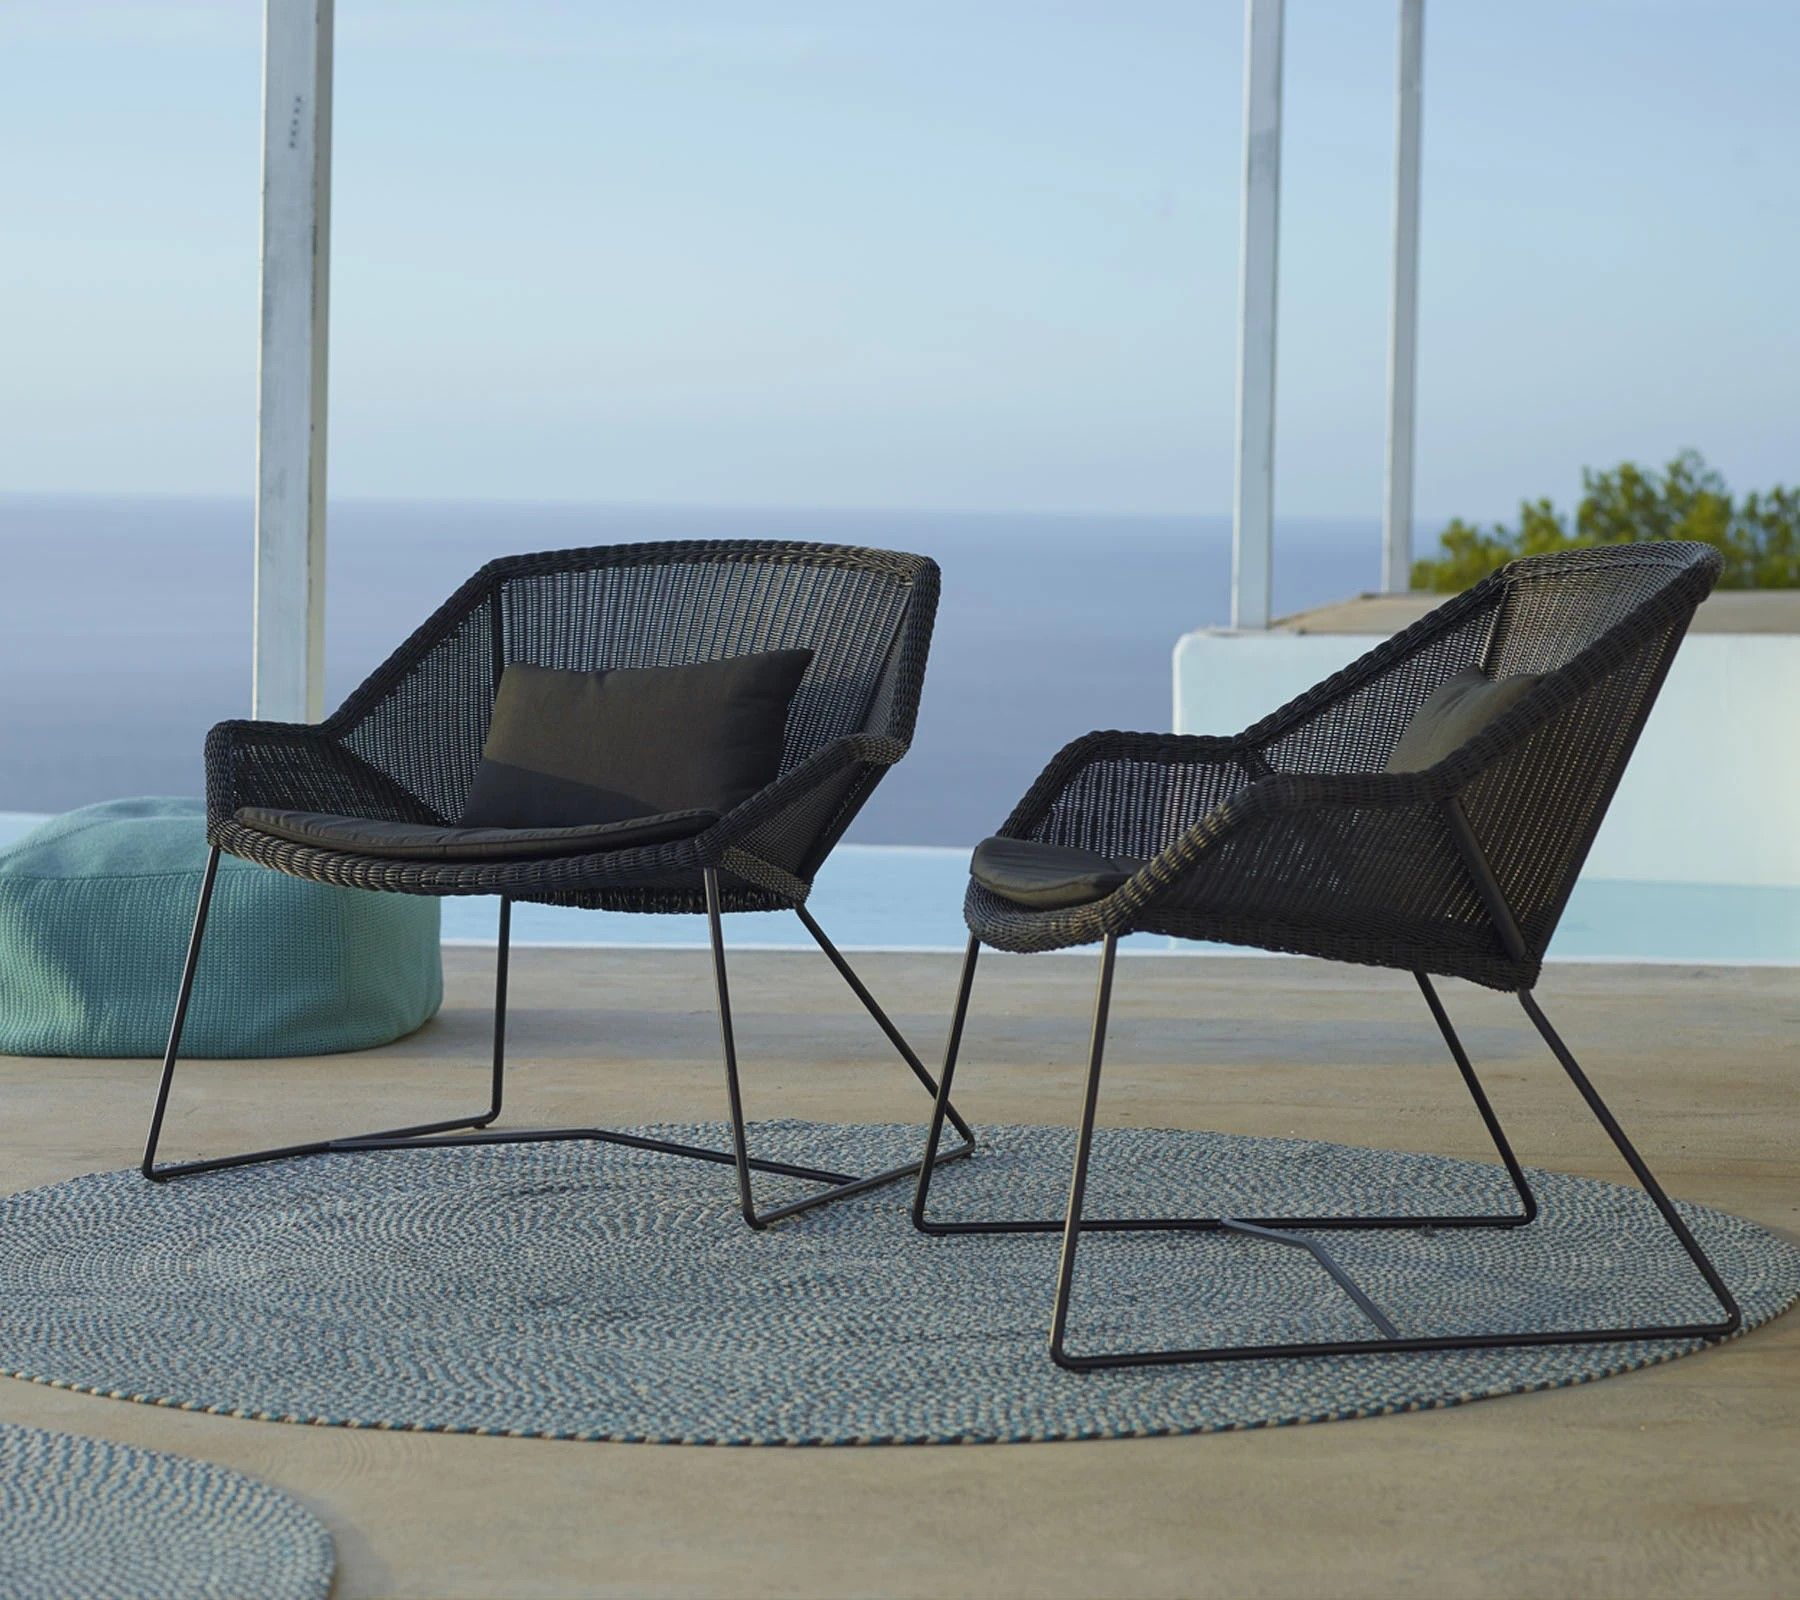 Outdoorlounge, Outdoorsessel Breeze, Cane Line